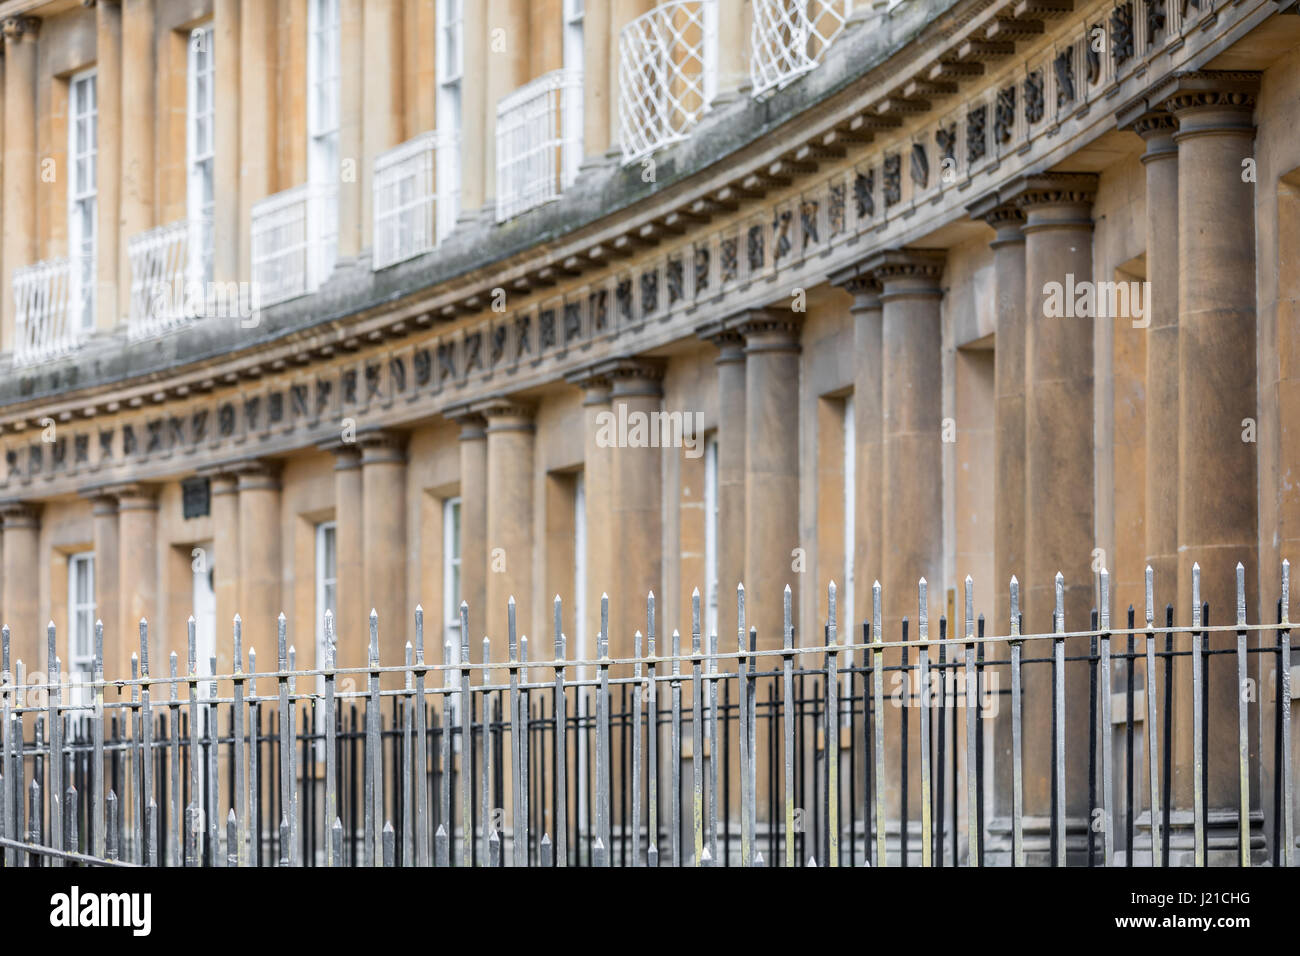 a detail image of the royal Cresent in Bath, England, UK - Stock Image